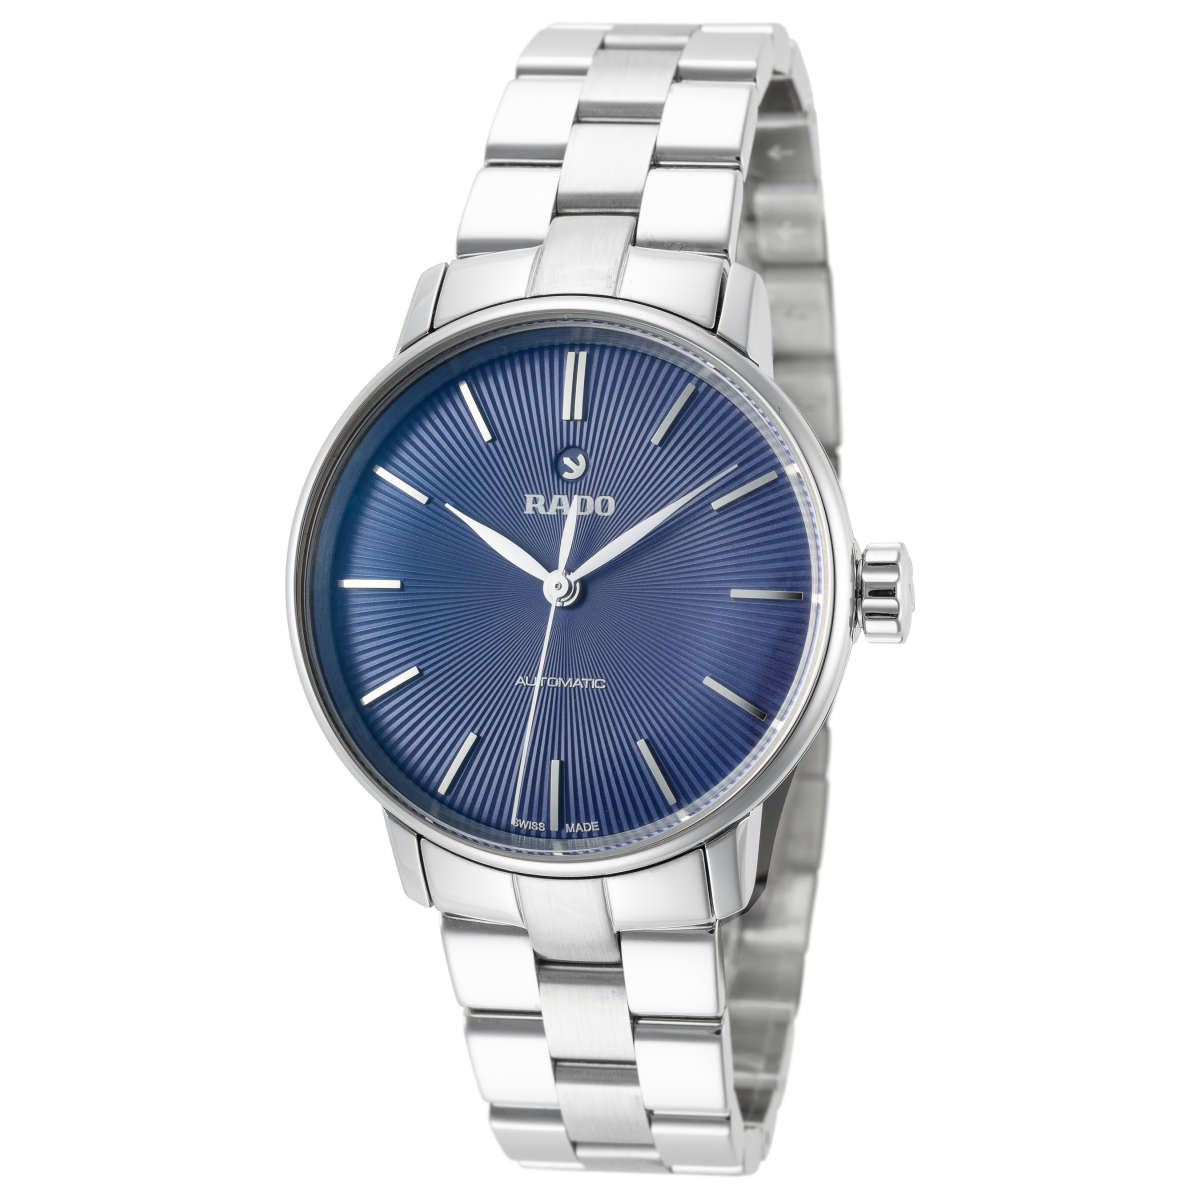 Rado Coupole Classic S Blue Dial Stainless Steel Automatic Women's Watch